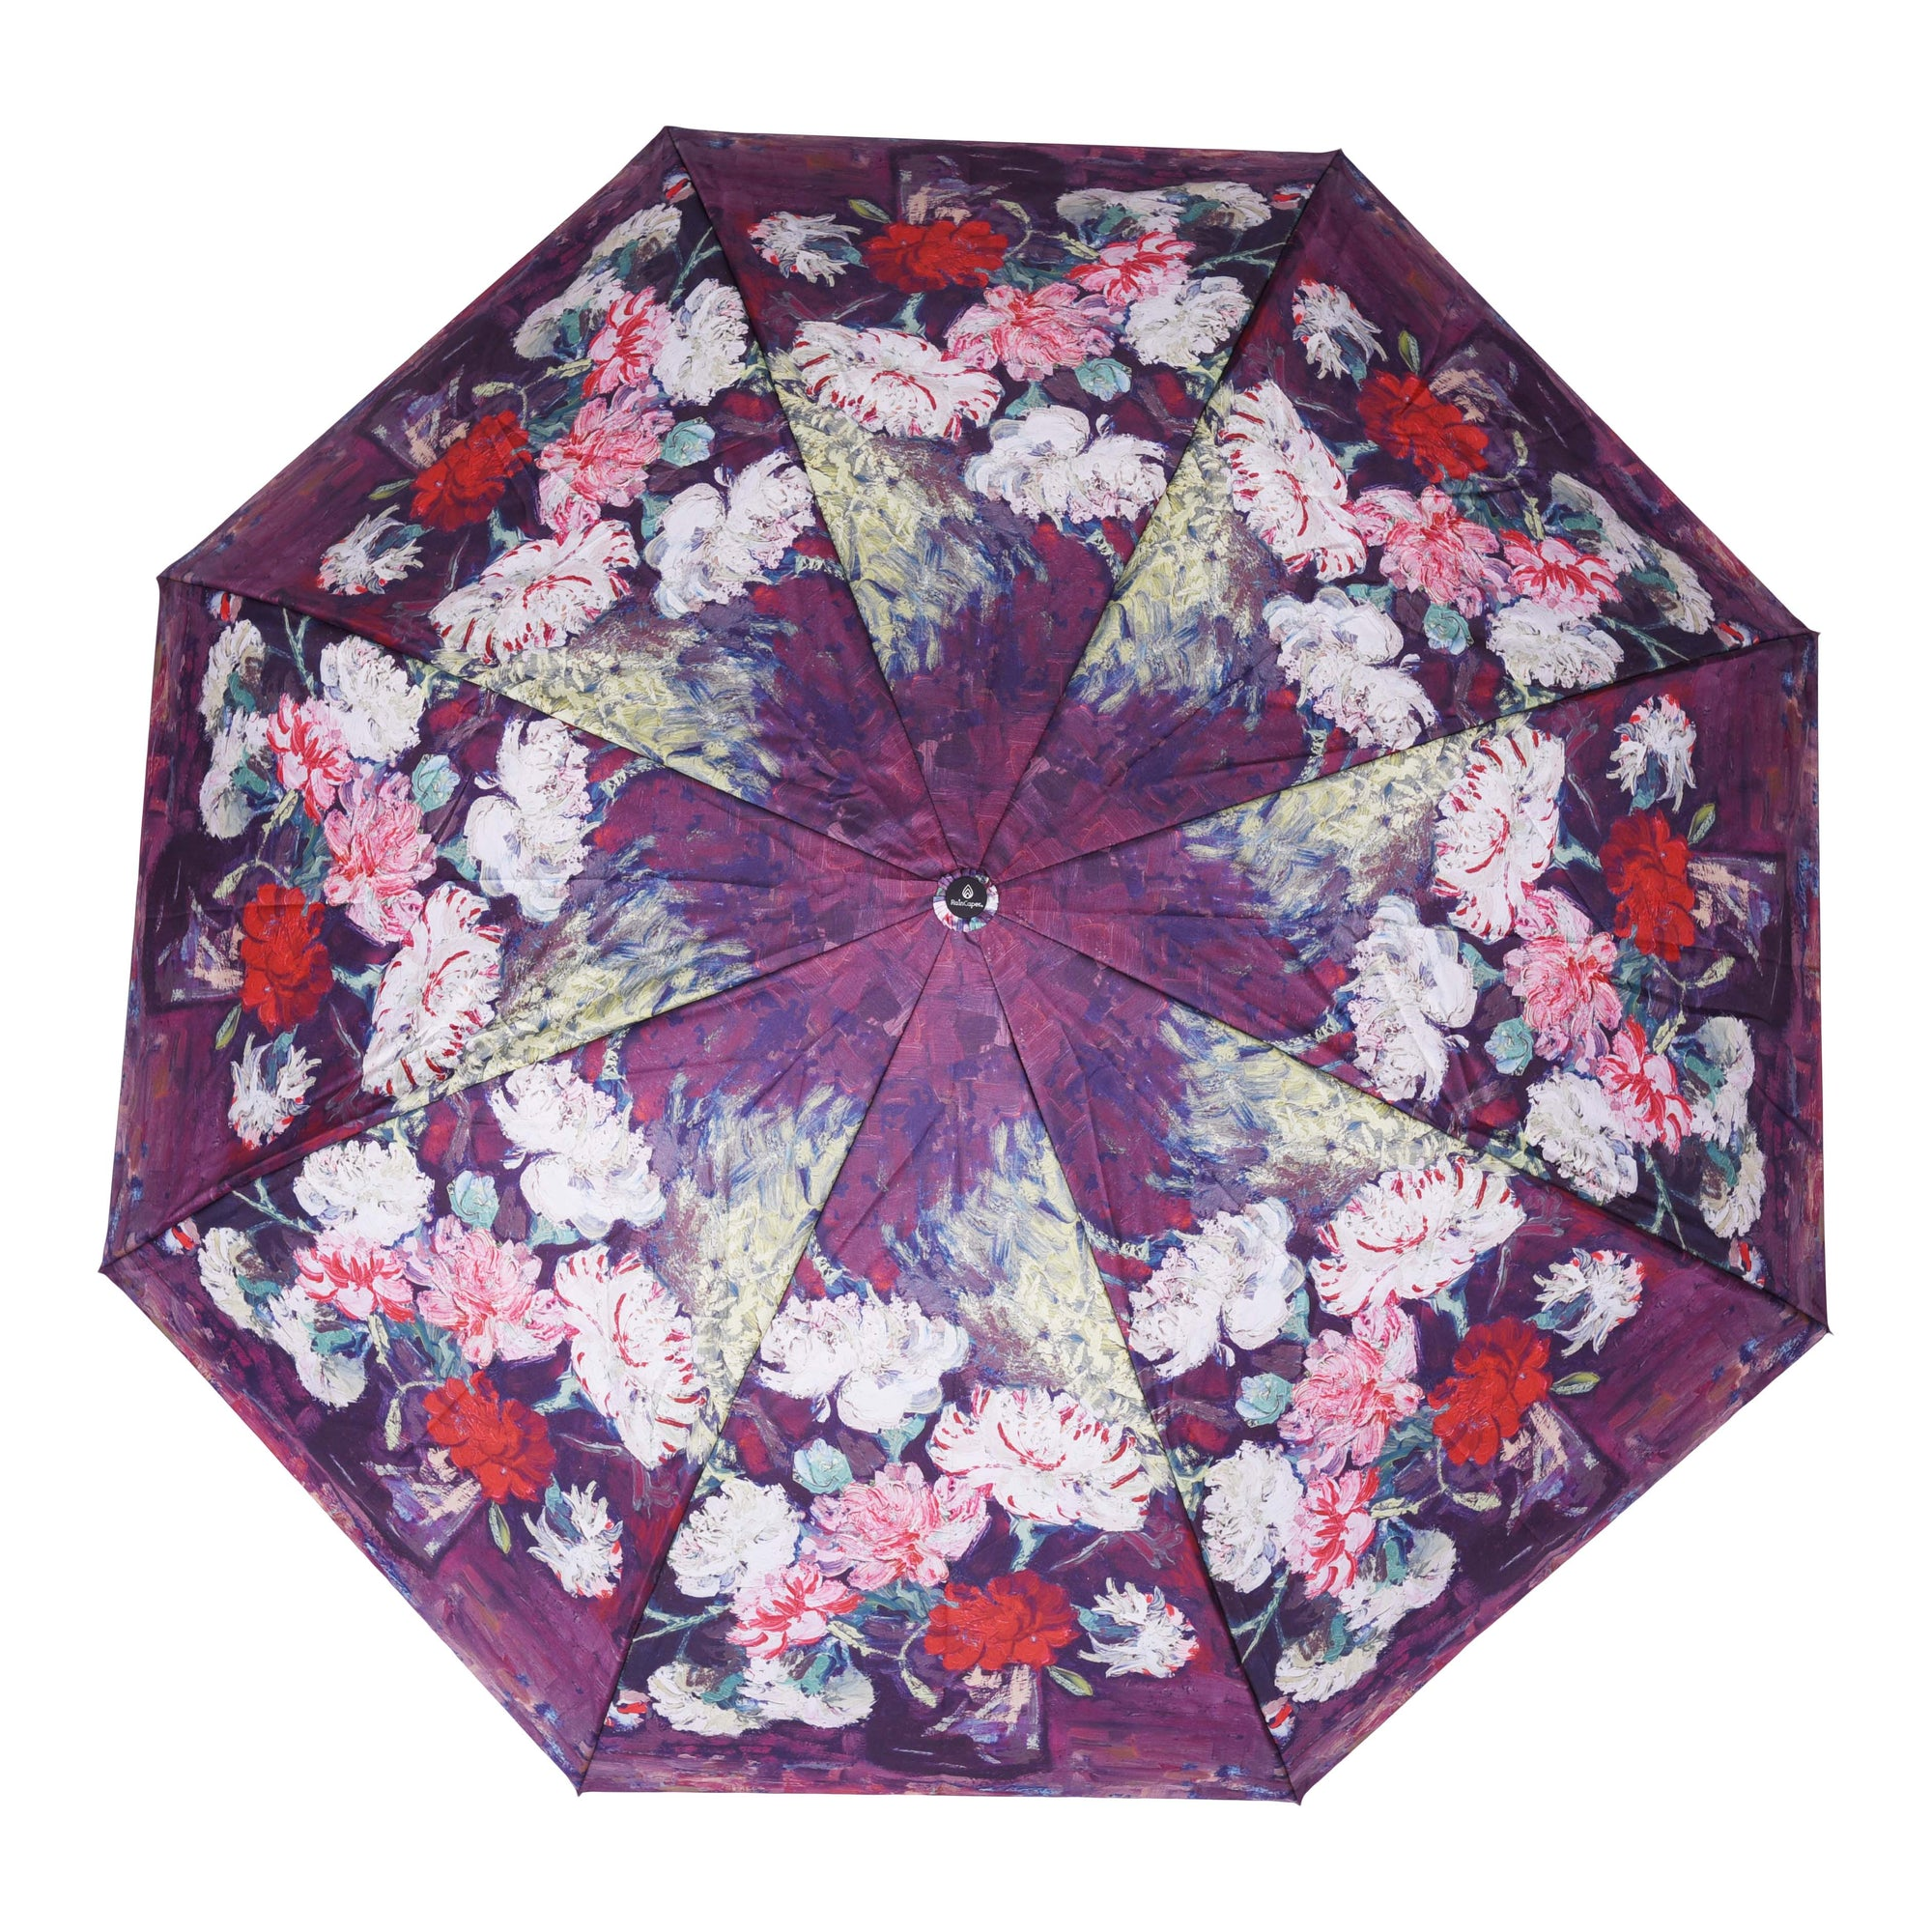 Image of a RainCaper van Gogh Carnations folded traveling umbrella shown both open and closed